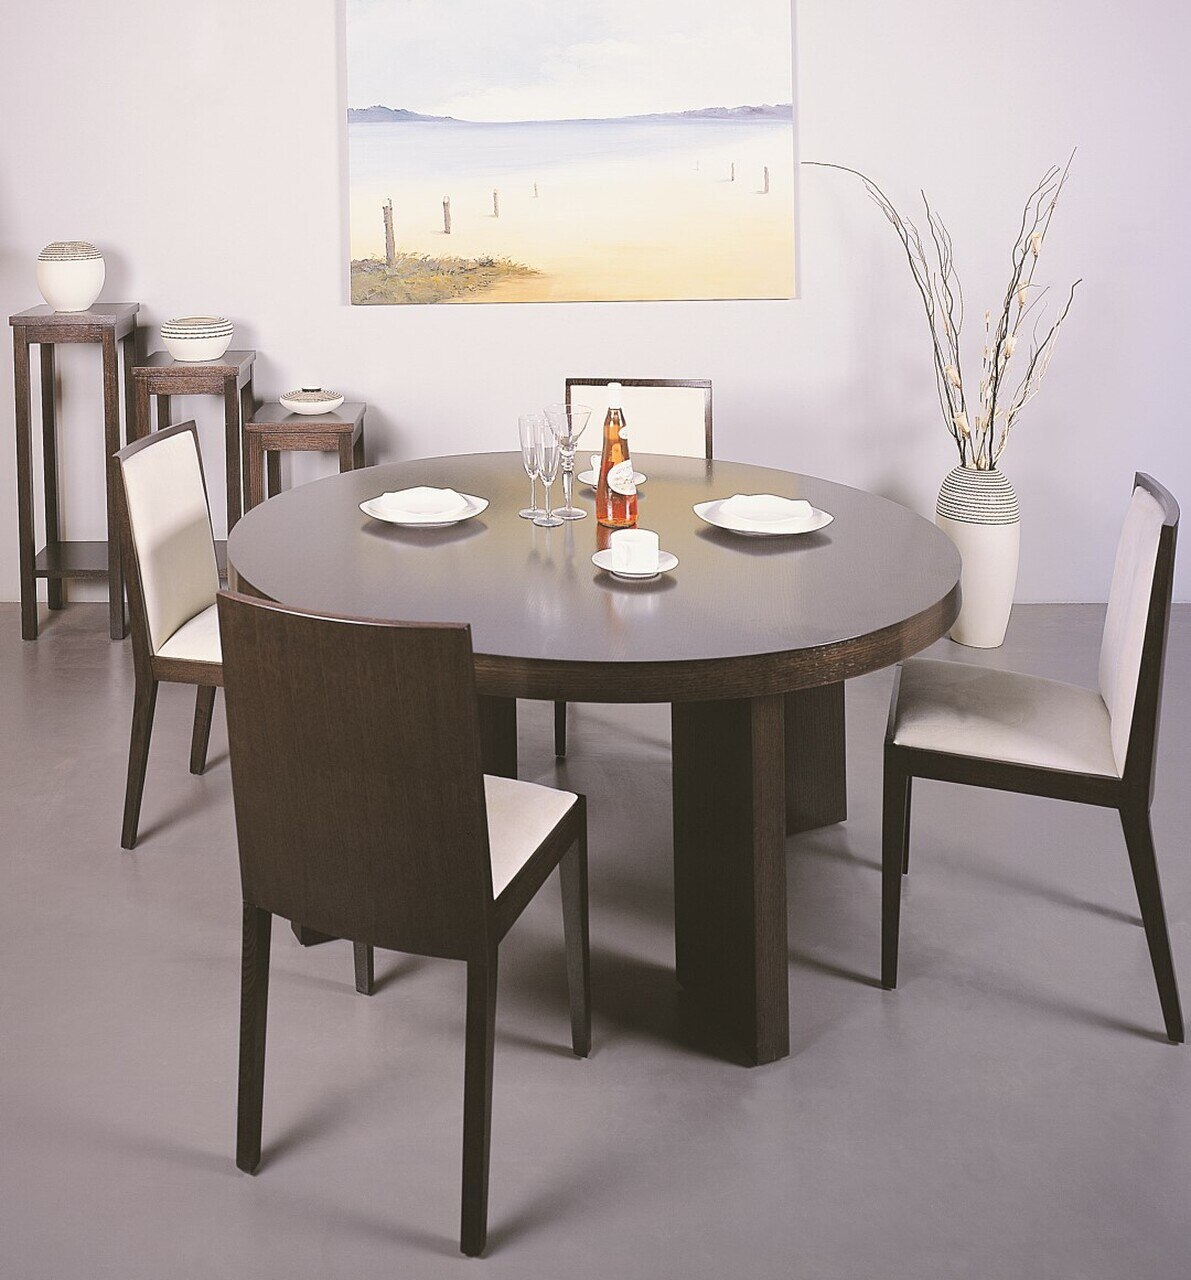 Luxury round wooden with microfiber seats modern dining for Contemporary dining set